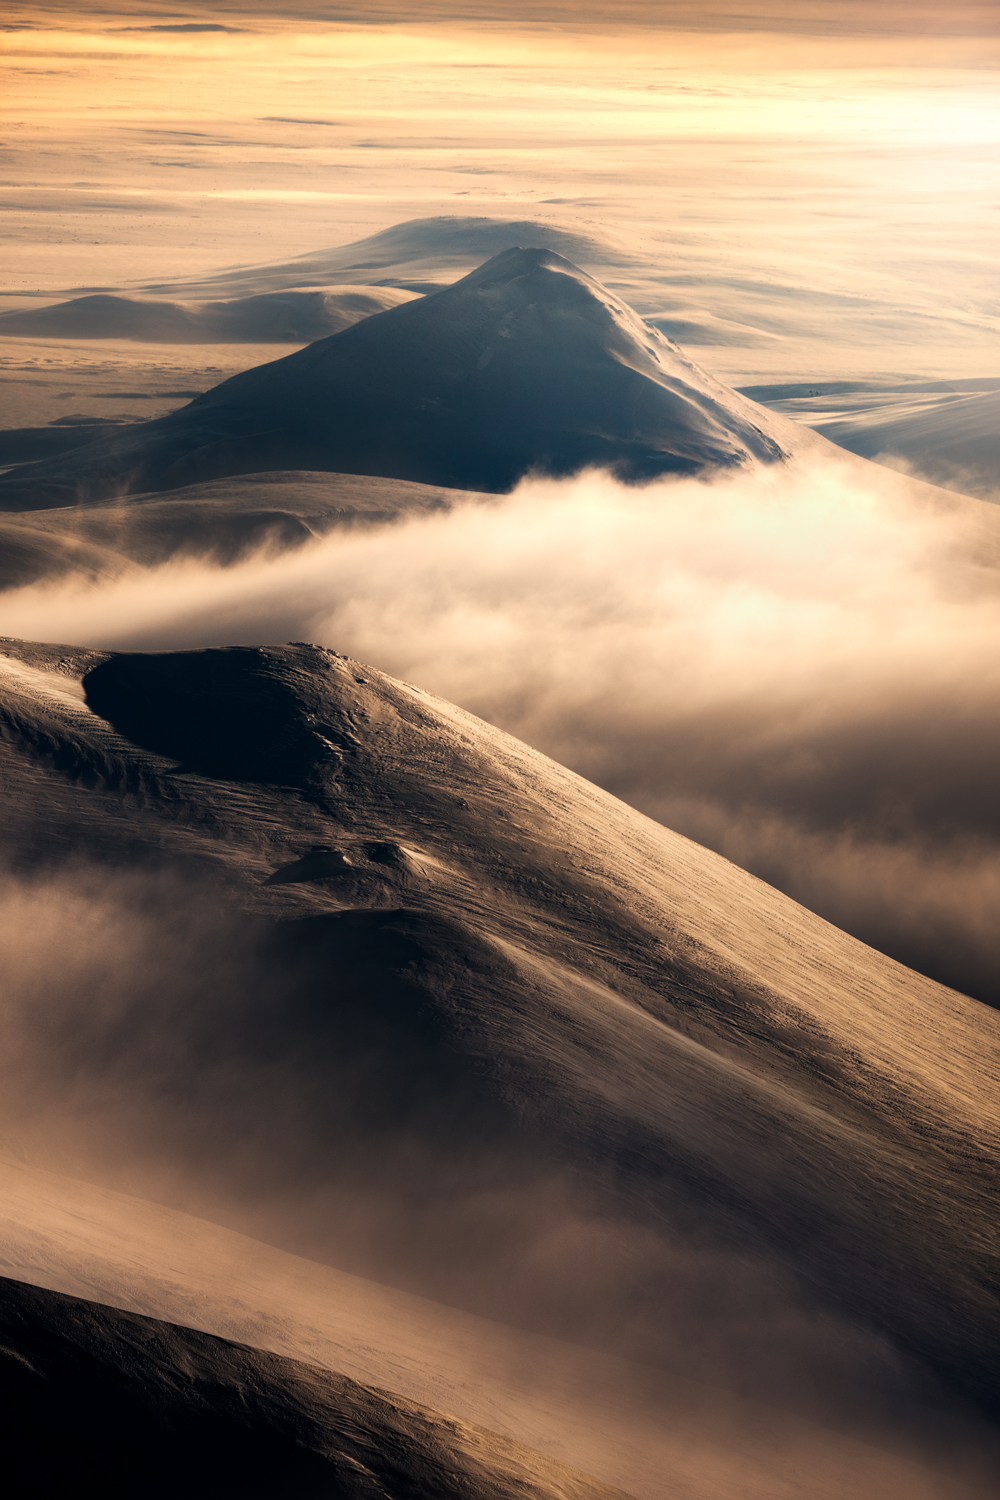 Snow capped mountains at dawn, Iceland